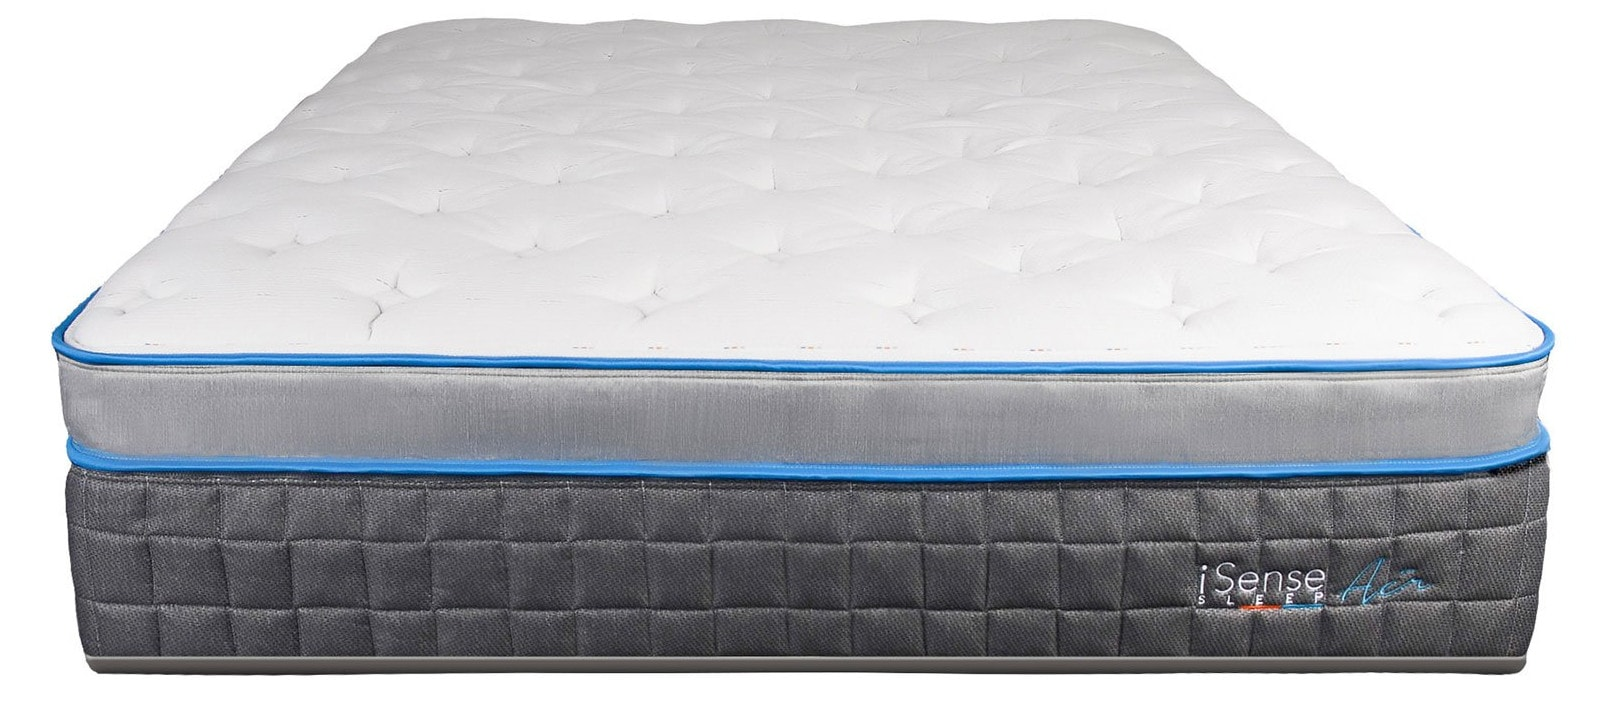 insense sleep air mattress review